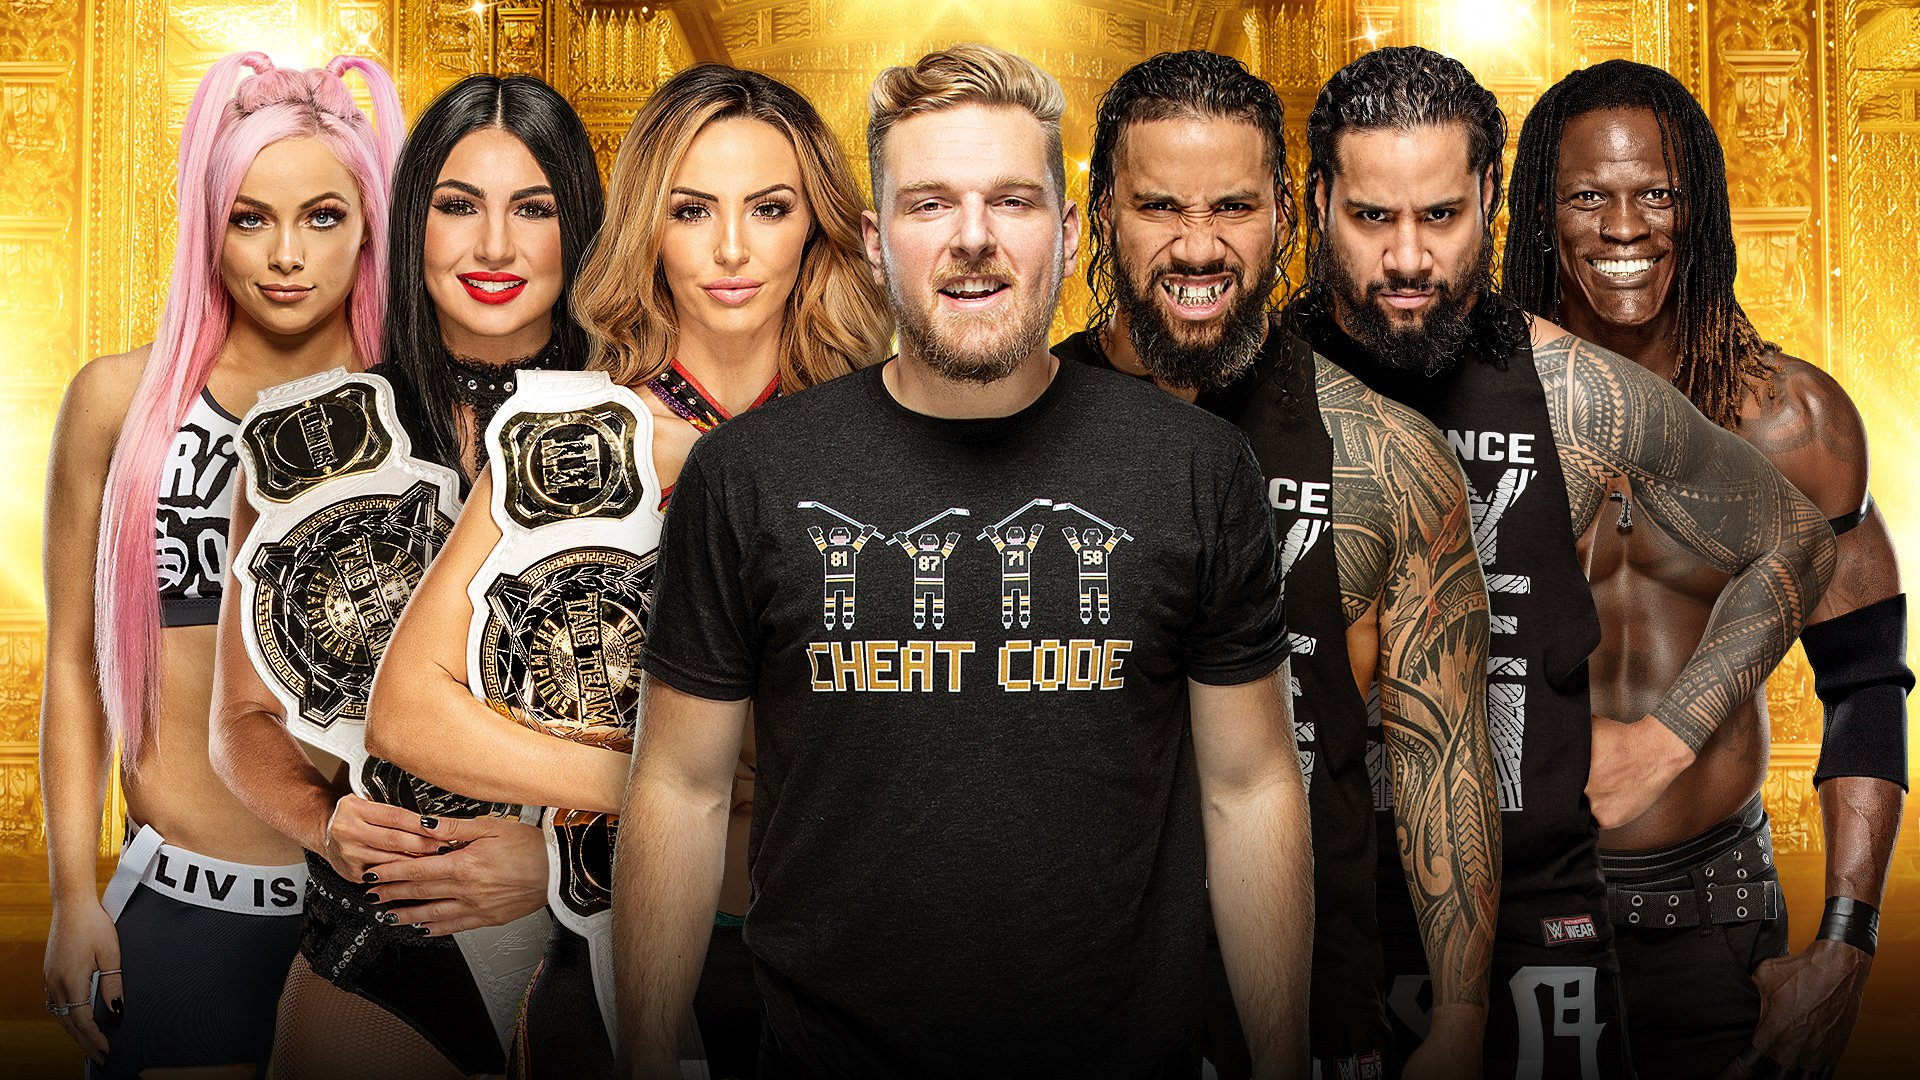 Top Five Youtube Wwe Wrestling May 2019 - Circus